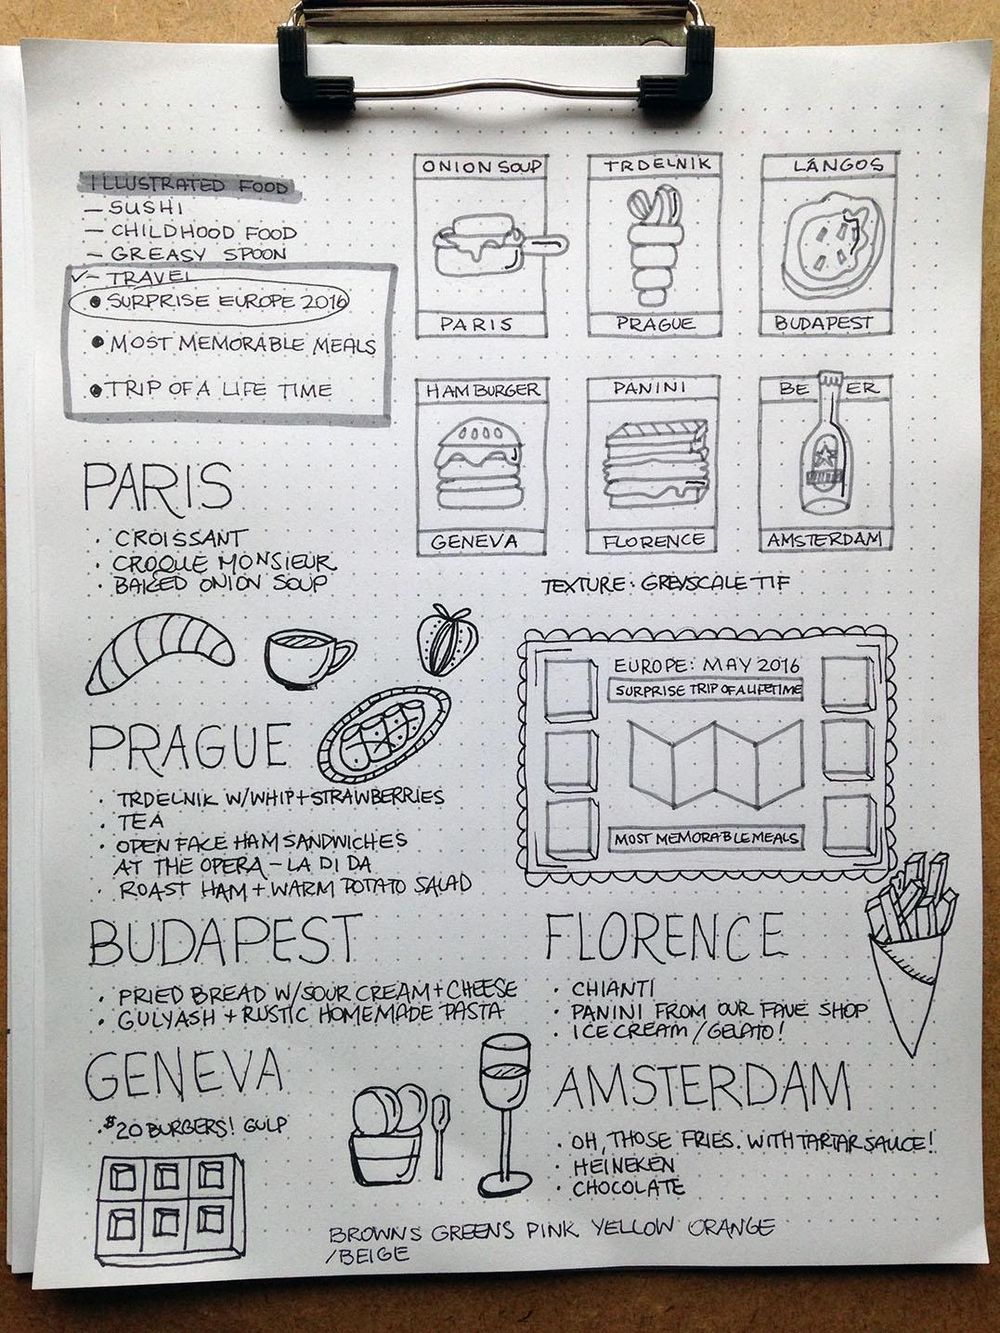 Trip Food: Most Memorable Meals - image 1 - student project